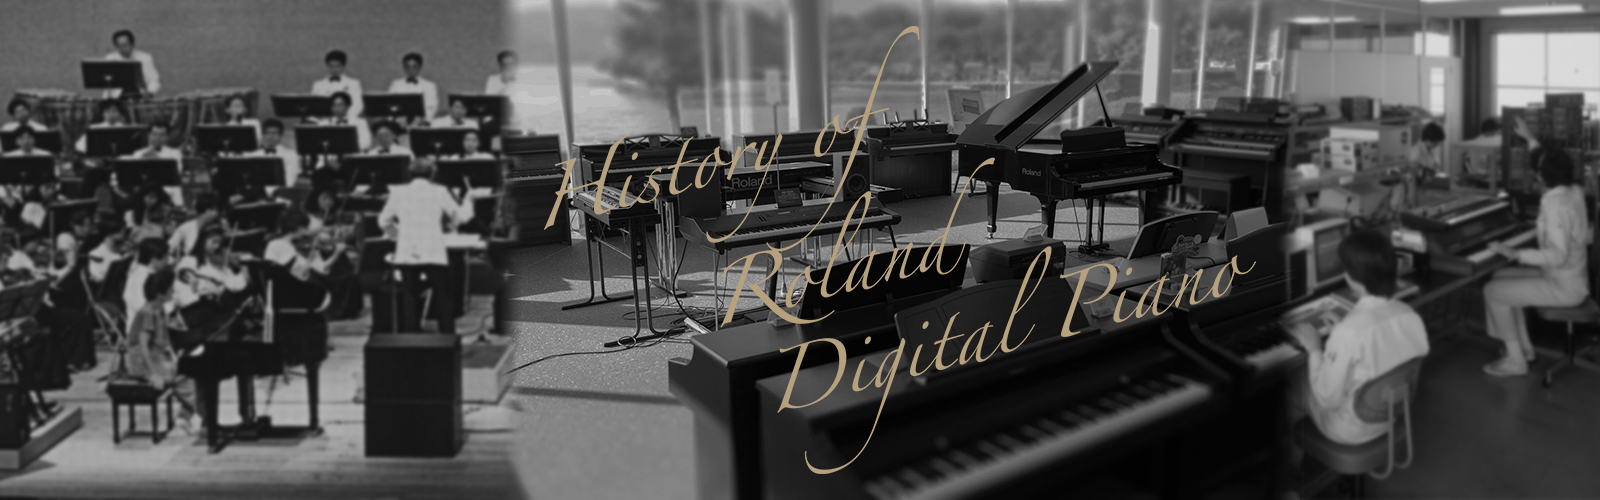 History of Roland Digital Piano